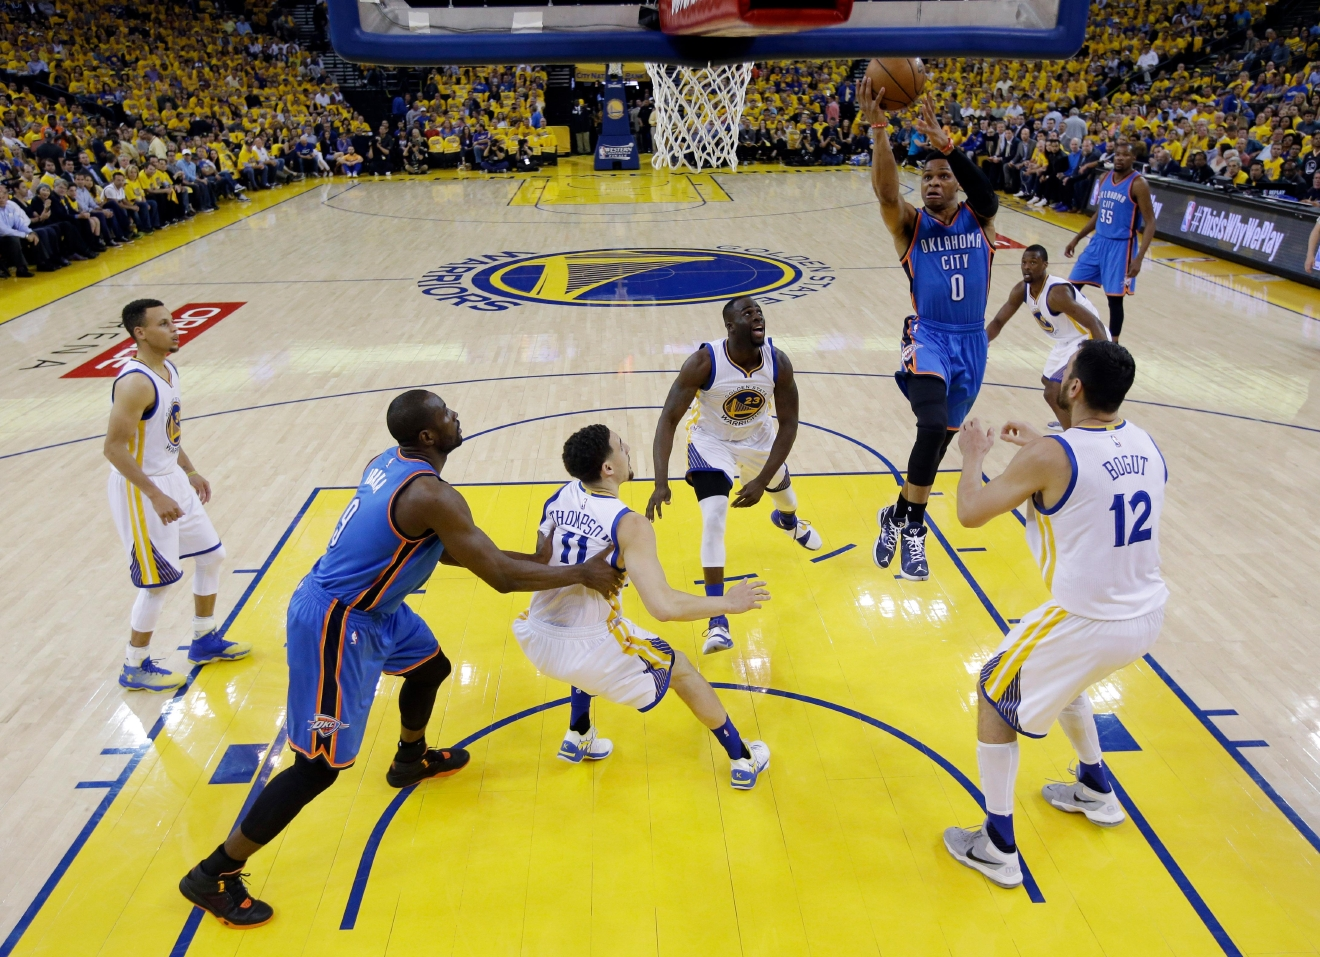 Oklahoma City Thunder's Russell Westbrook (0) drives to the basket against the Golden State Warriors during the first half in Game 2 of the NBA basketball Western Conference finals Wednesday, May 18, 2016, in Oakland, Calif. (AP Photo/Marcio Jose Sanchez)